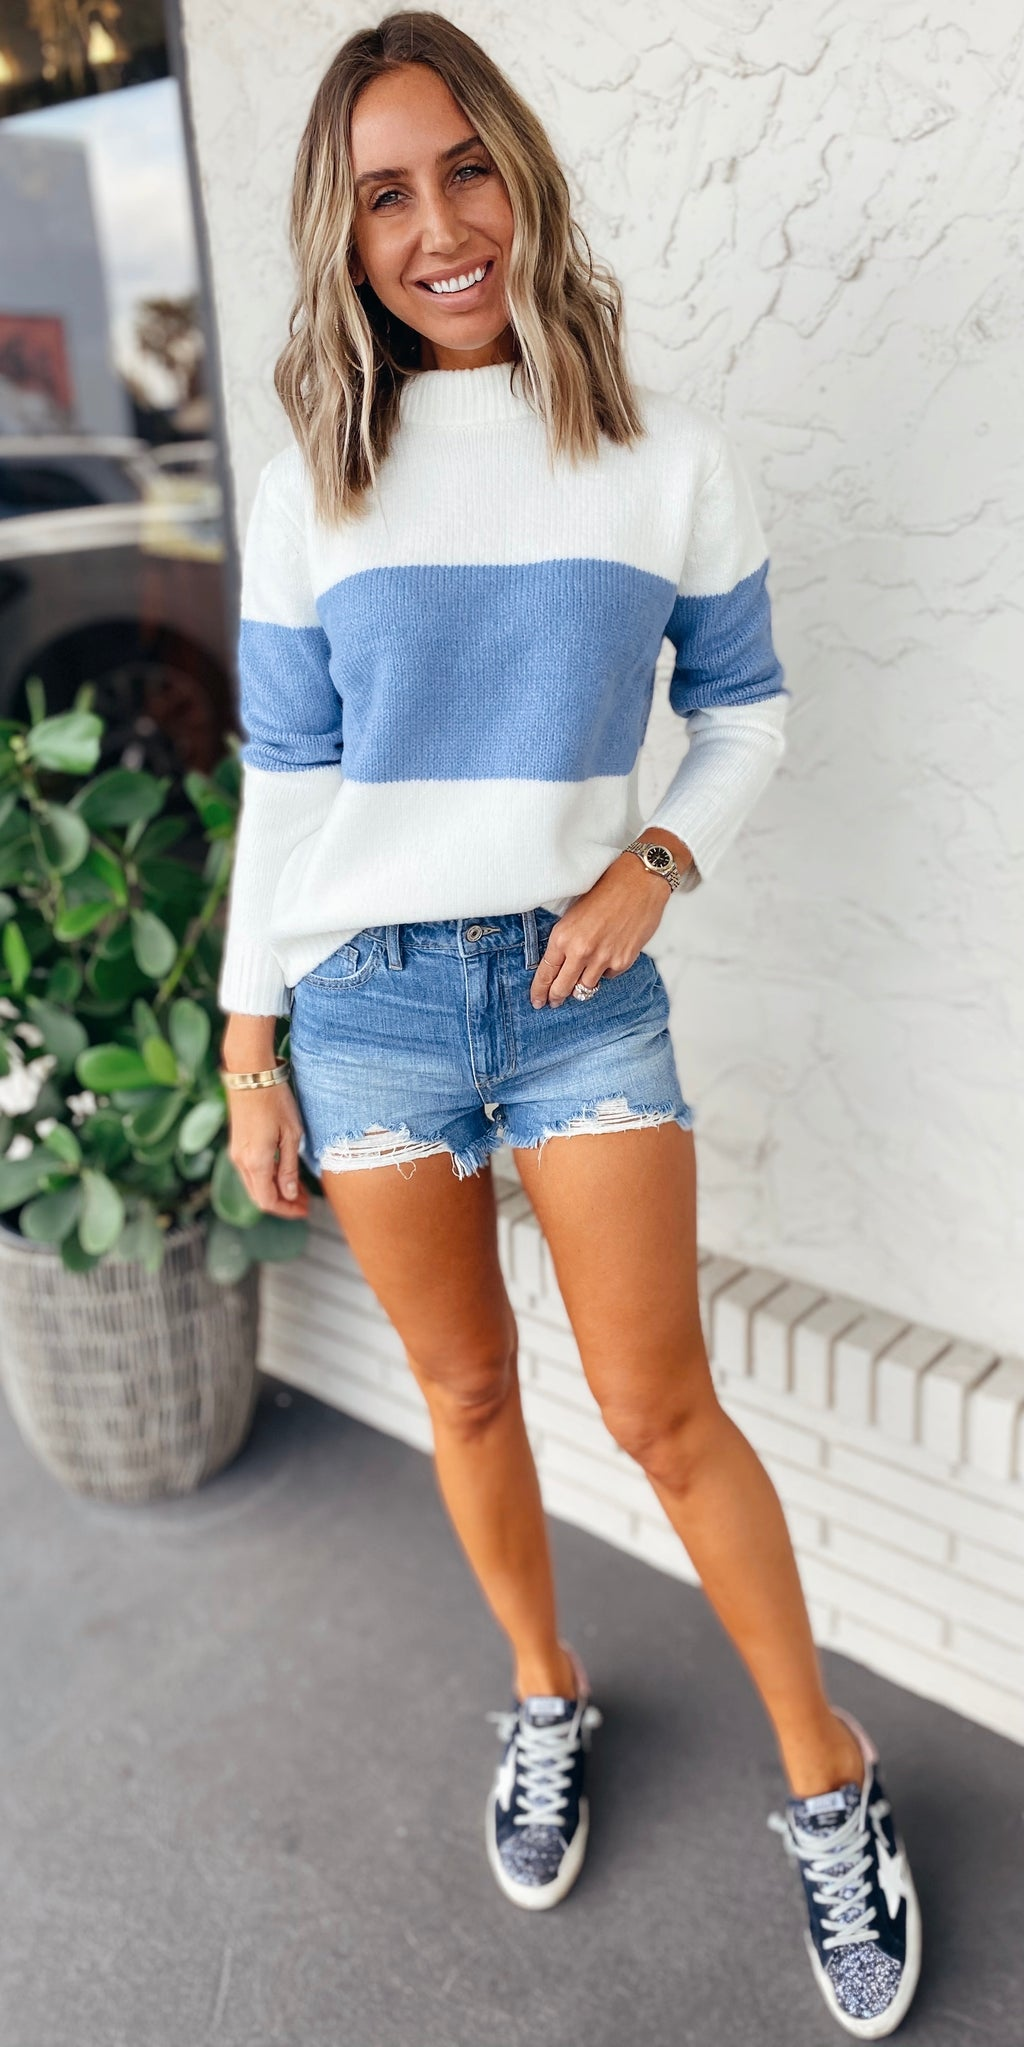 The Blue Skies Sweater